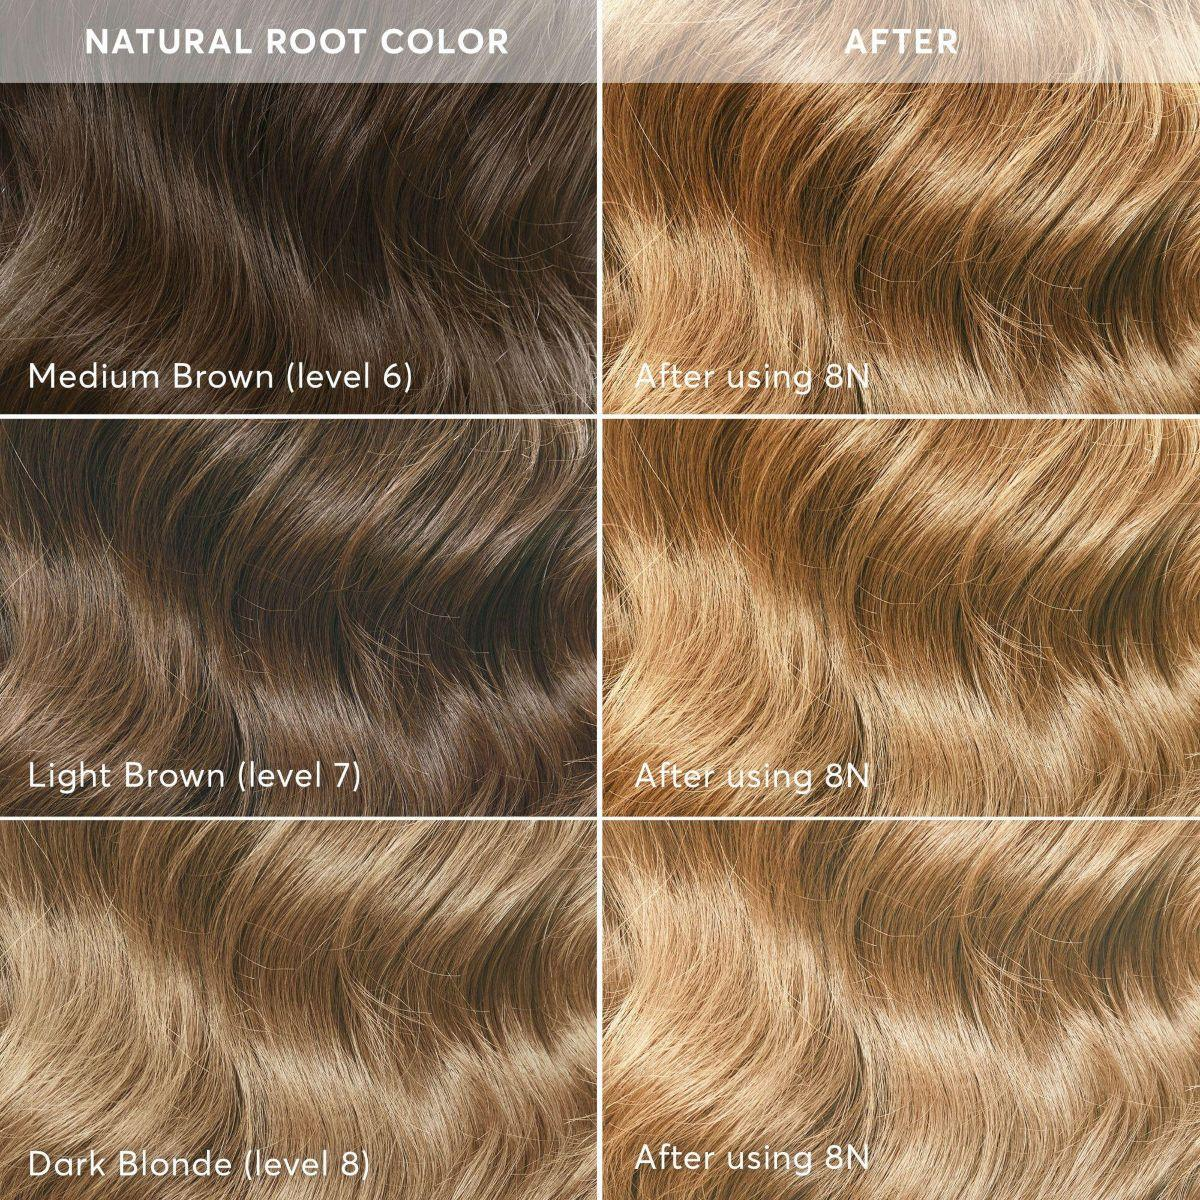 8N hair color level lift before and after